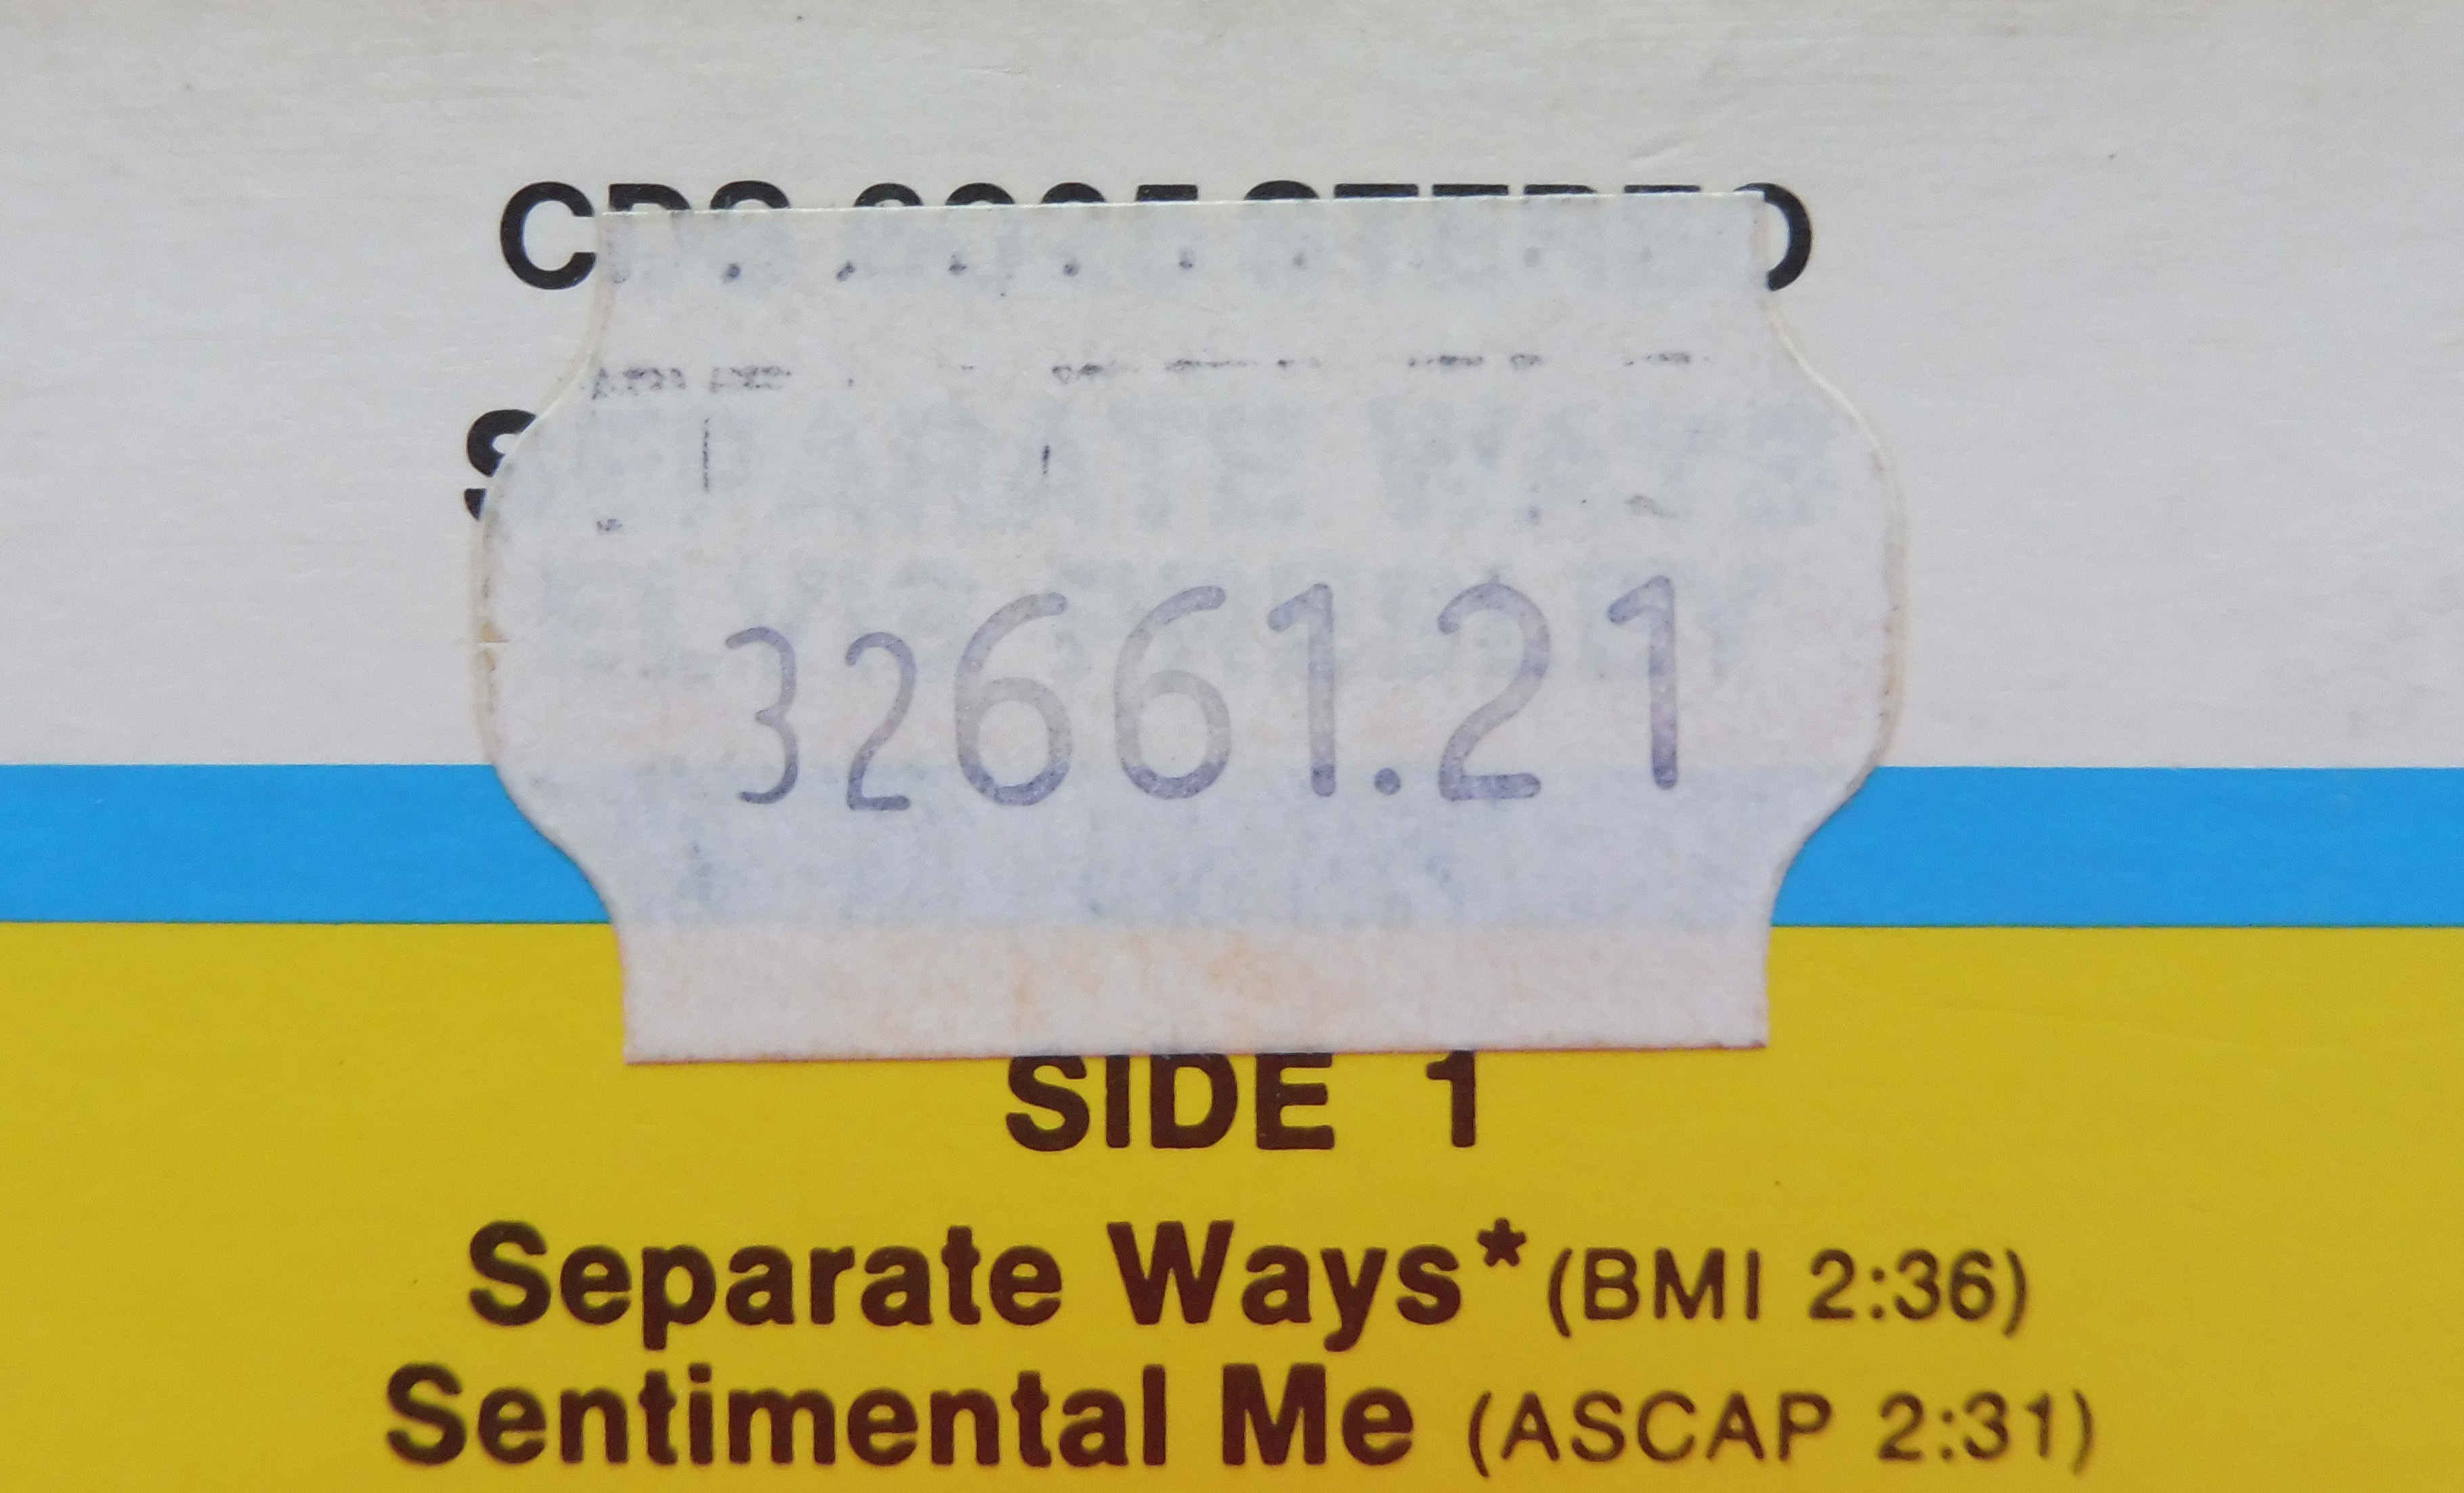 SEPARATE WAYS Separatewayscds73rcksljii3